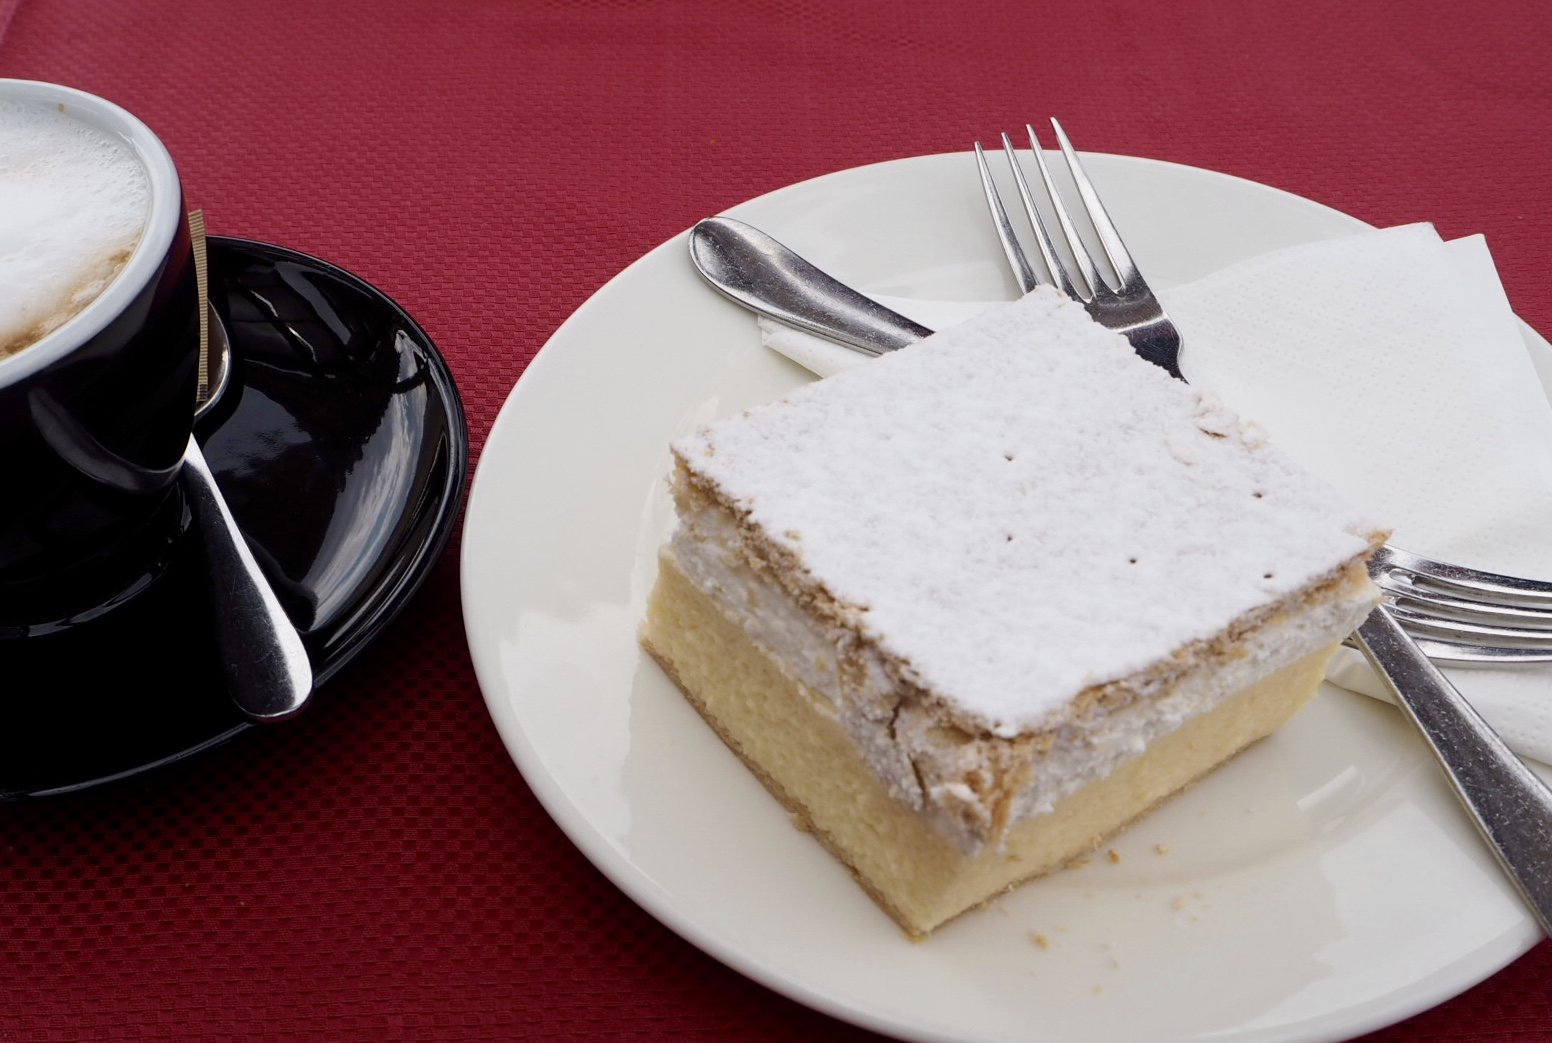 Lake Bled cream cake and coffee